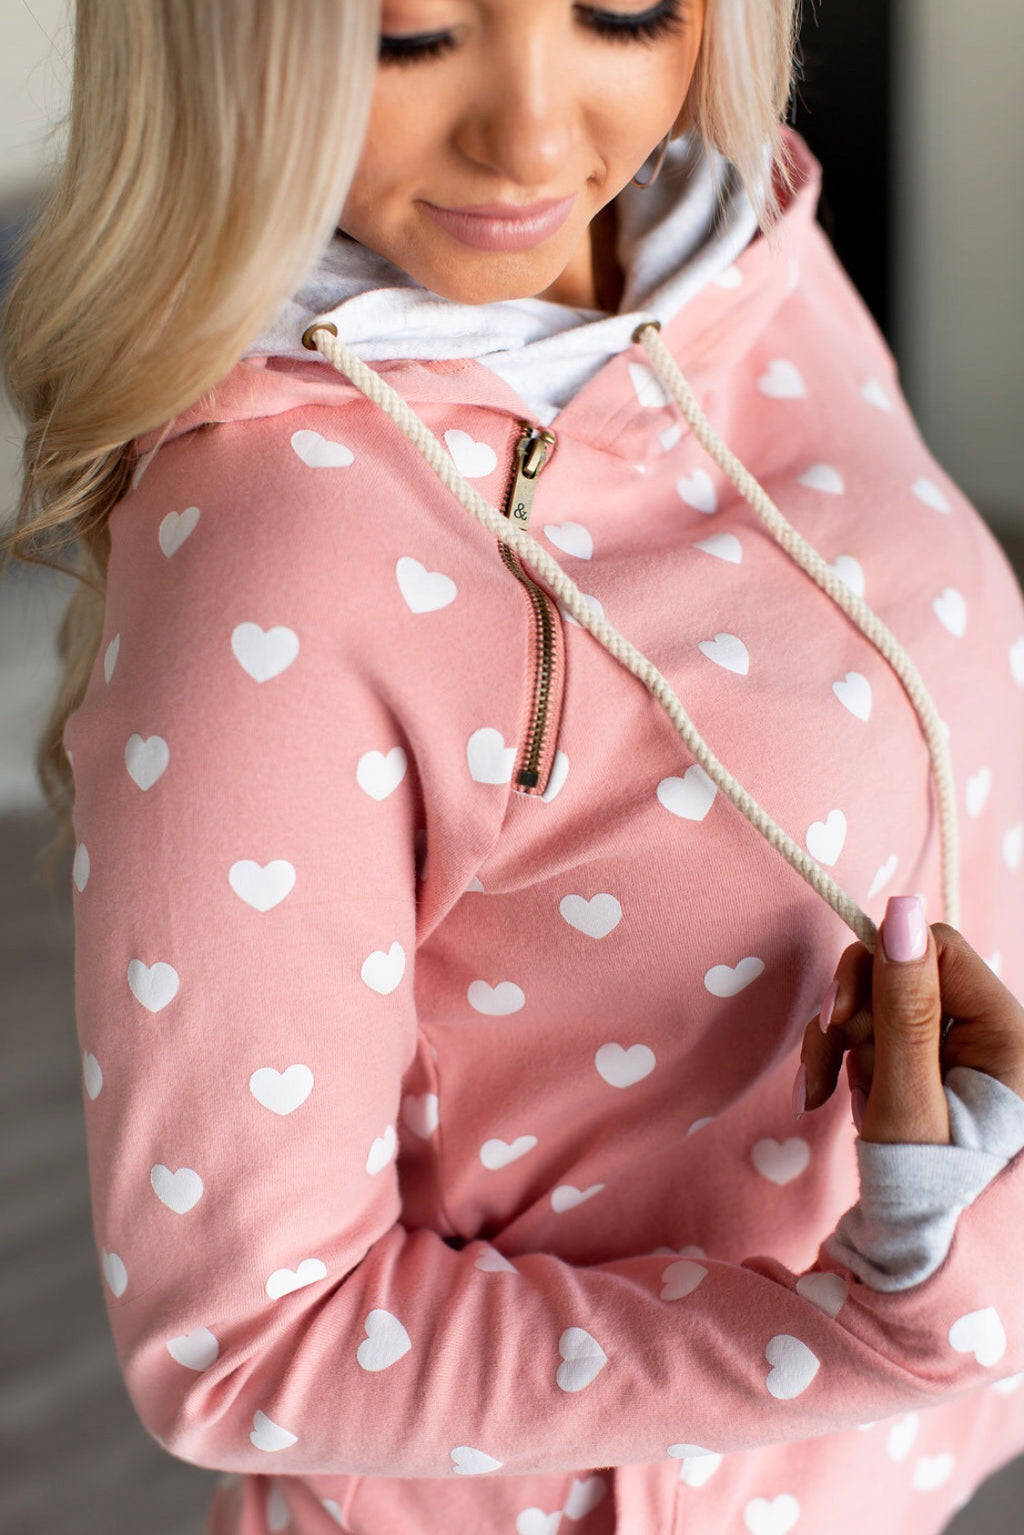 DoubleHood™ Sweatshirt - All The Heart Eyes